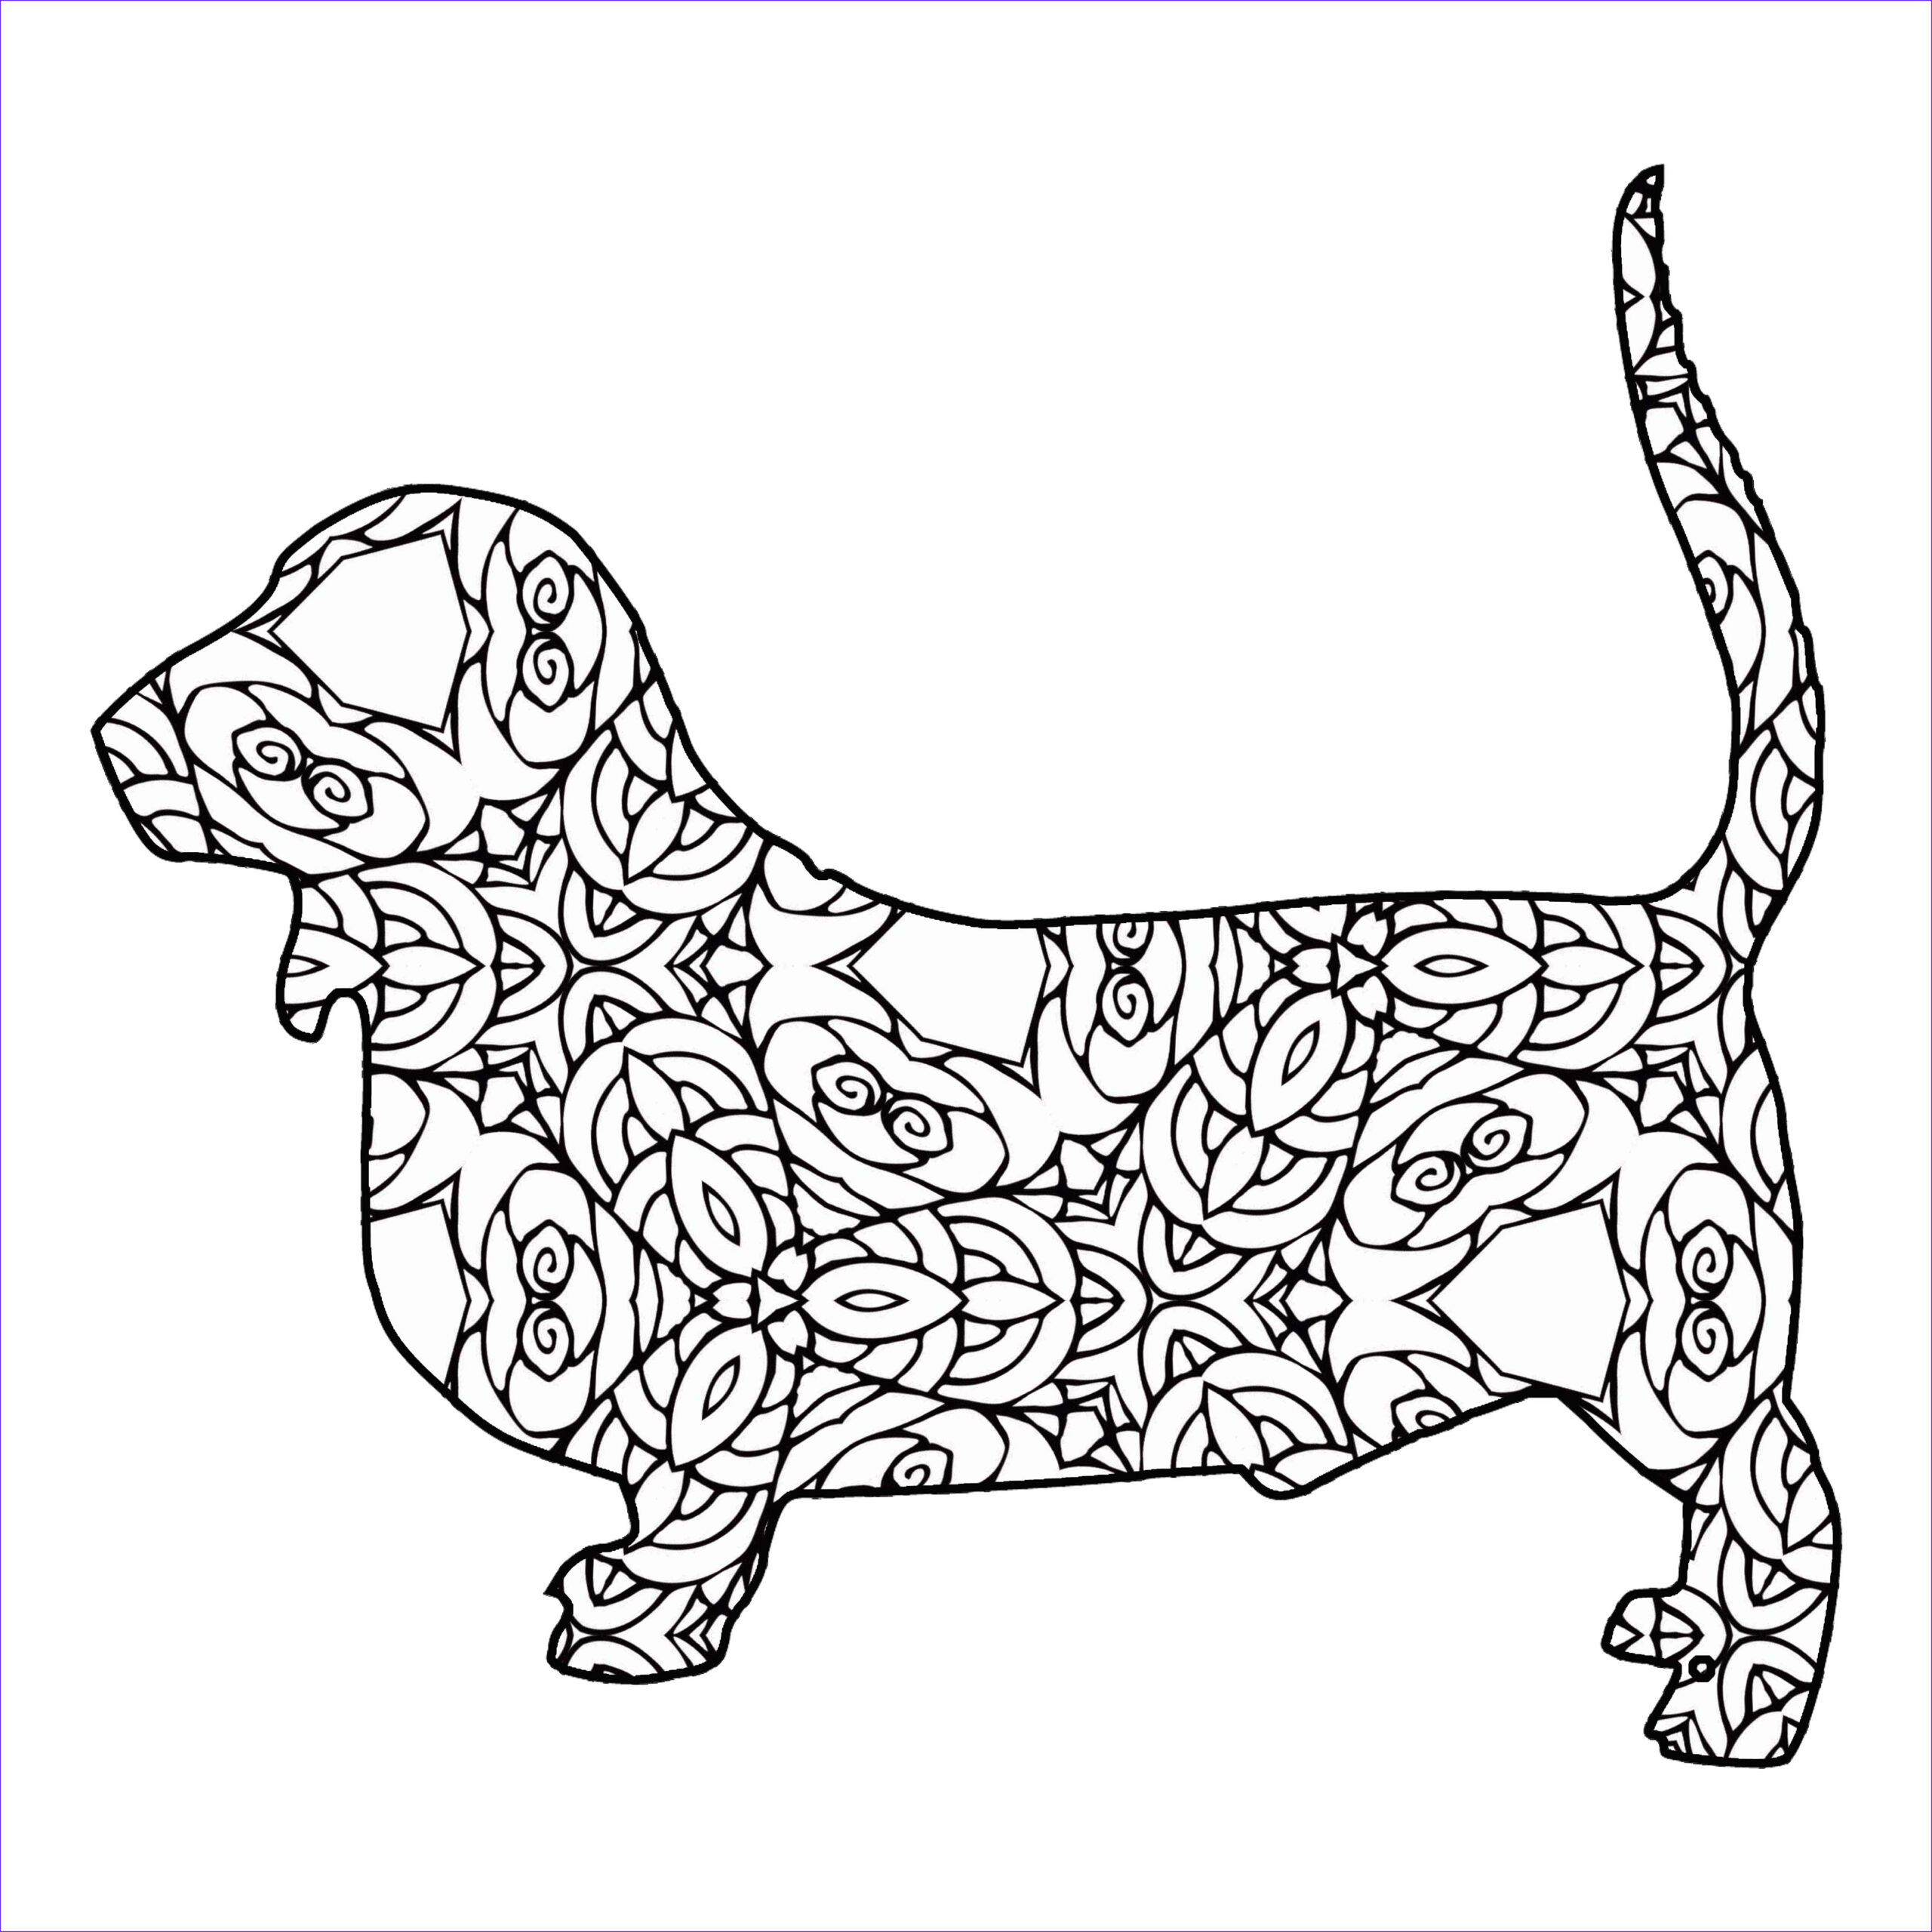 Animal Coloring Pages Printable Inspirational Images 30 Free Coloring Pages A Geometric Animal Coloring